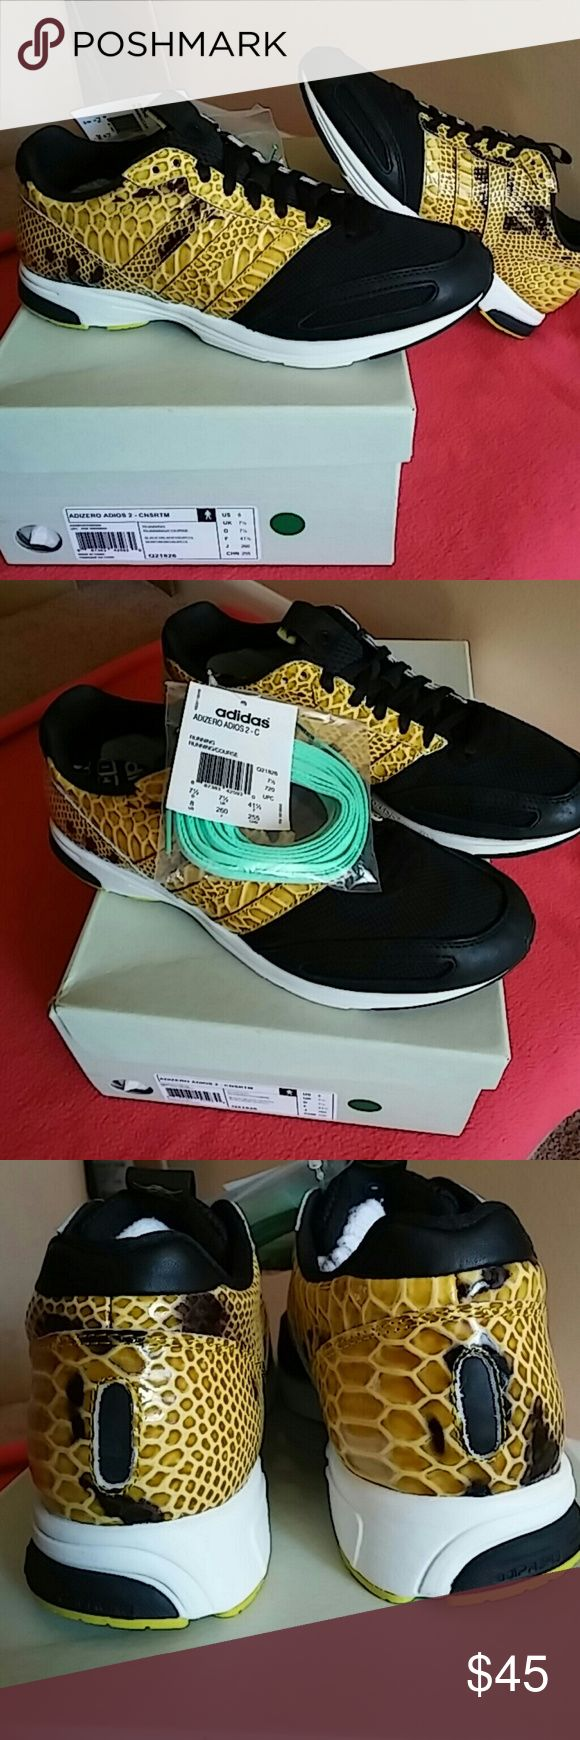 Brand New Adidas Adios II Brand New in original box with additional green lace ...MEN SIZE 8...and WOMEN SIZE 10... Adidas Shoes Sneakers